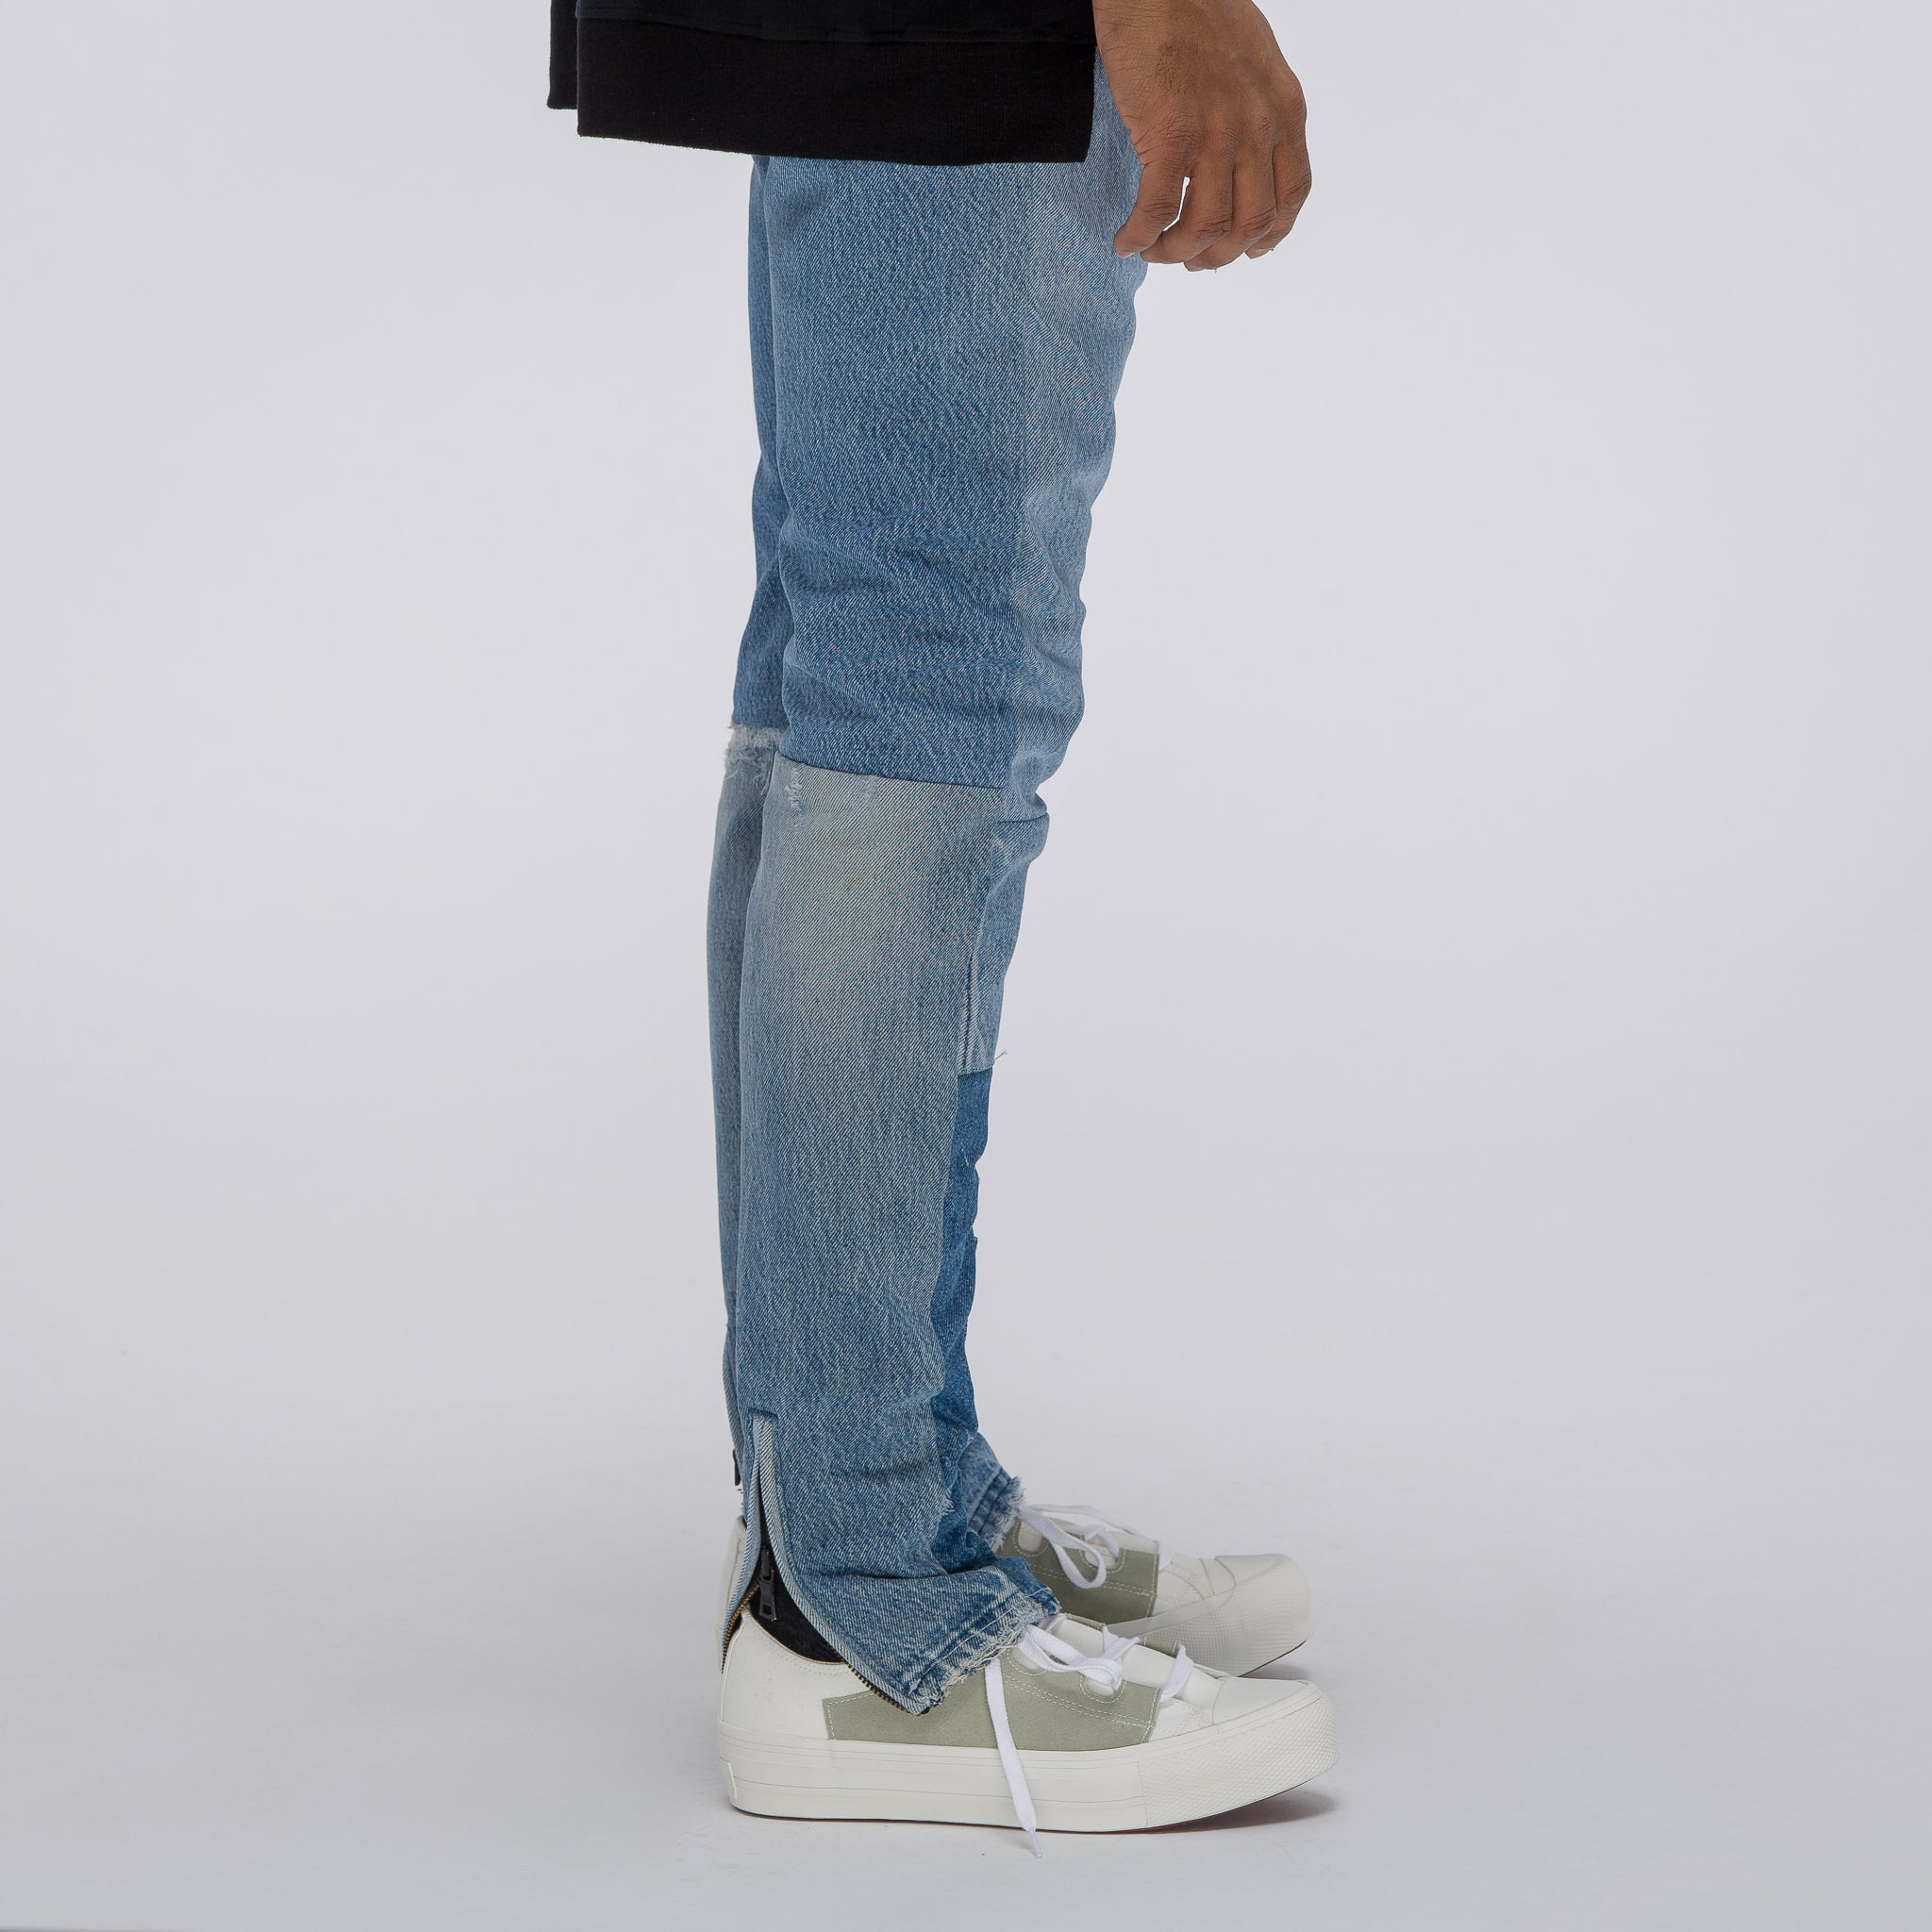 T2 Utility Jeans in Light Indigo